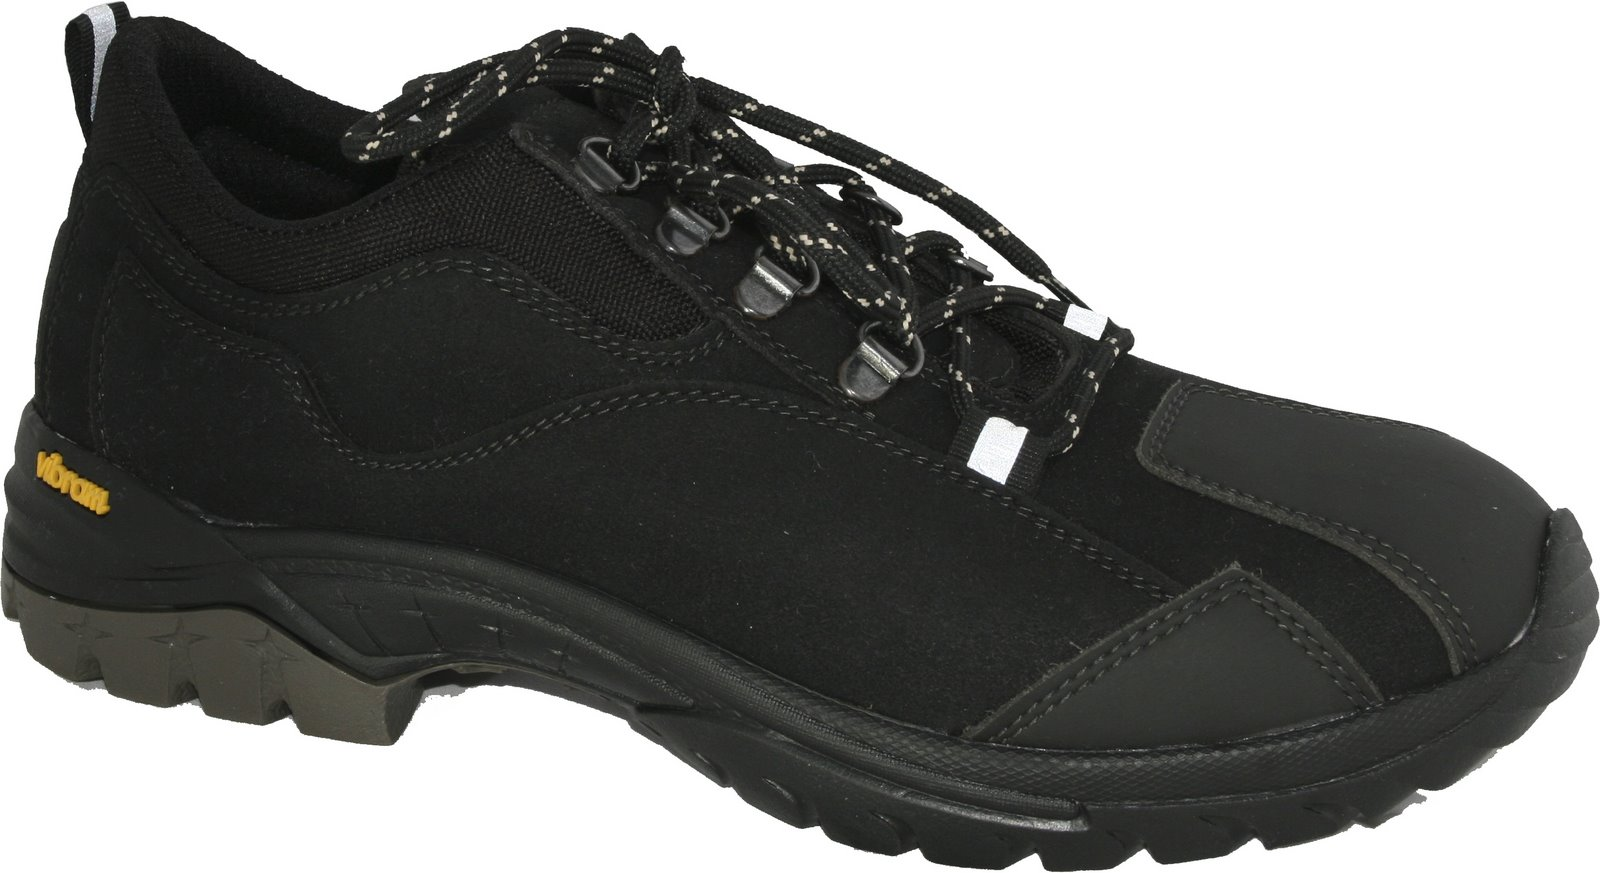 Kathmandu Walking Shoe, Vegan Walking Shoe